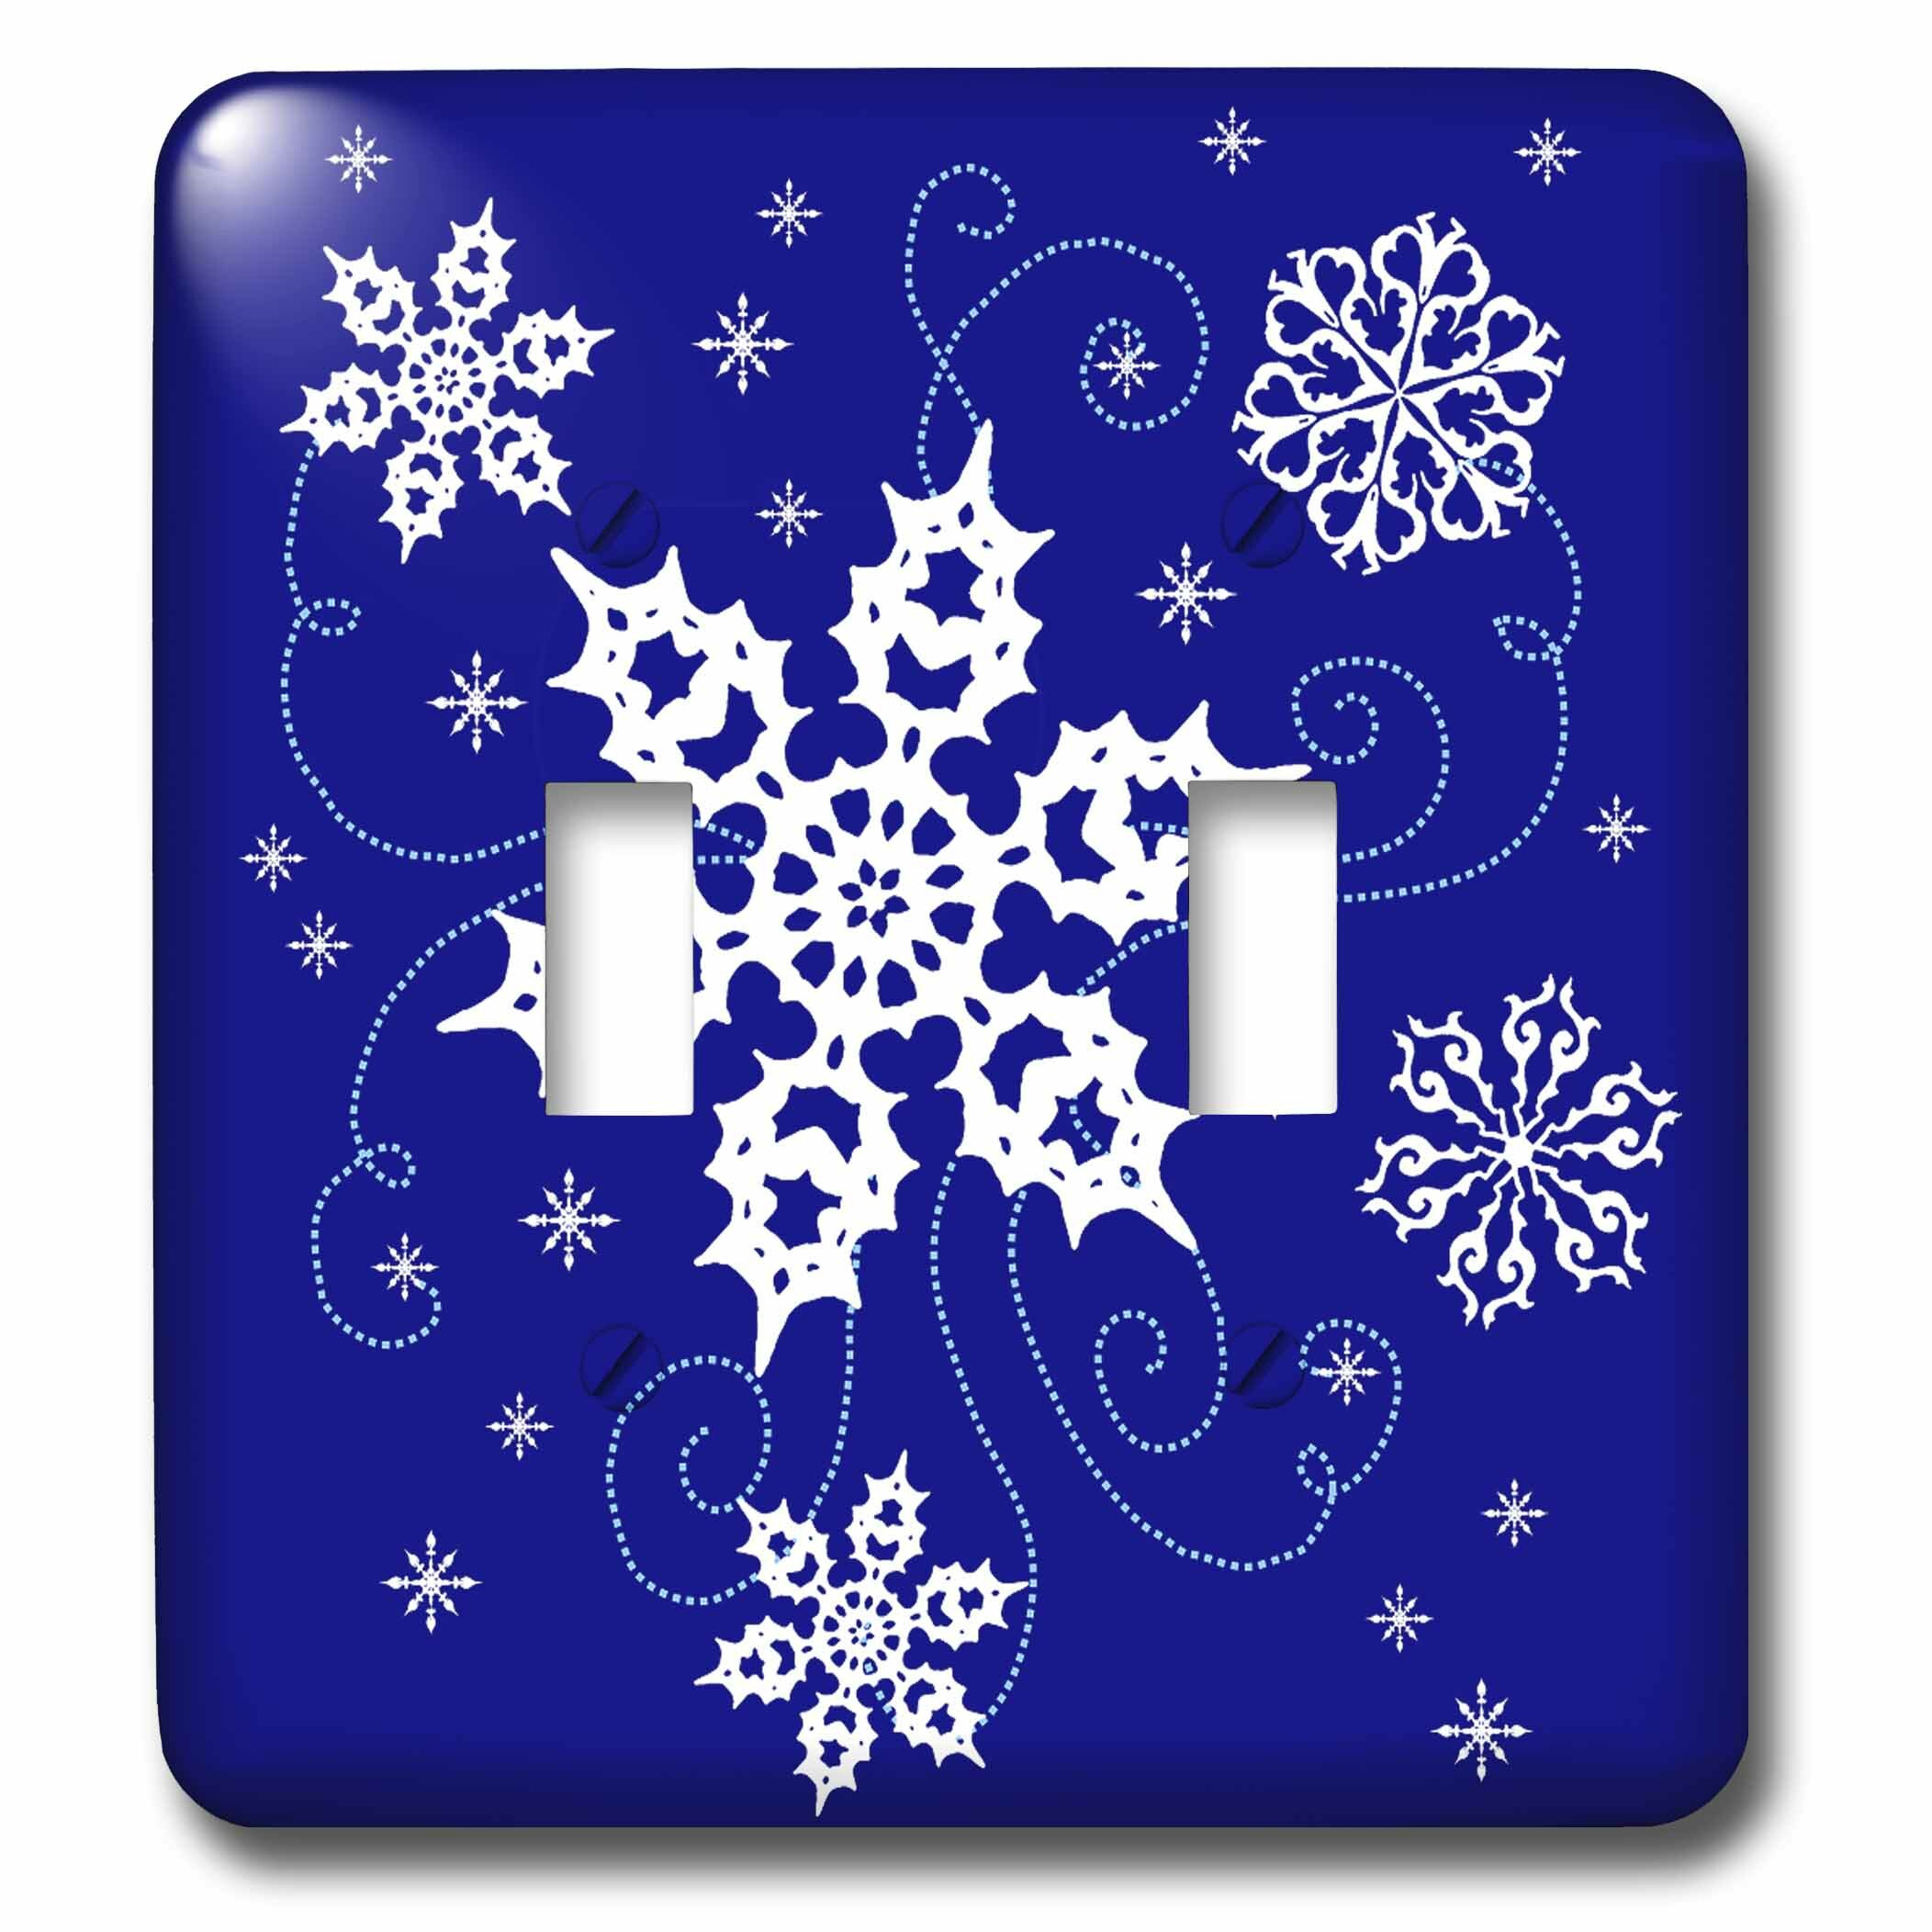 3drose Pretty Swirling Snowflakes 2 Gang Toggle Light Switch Wall Plate Wayfair